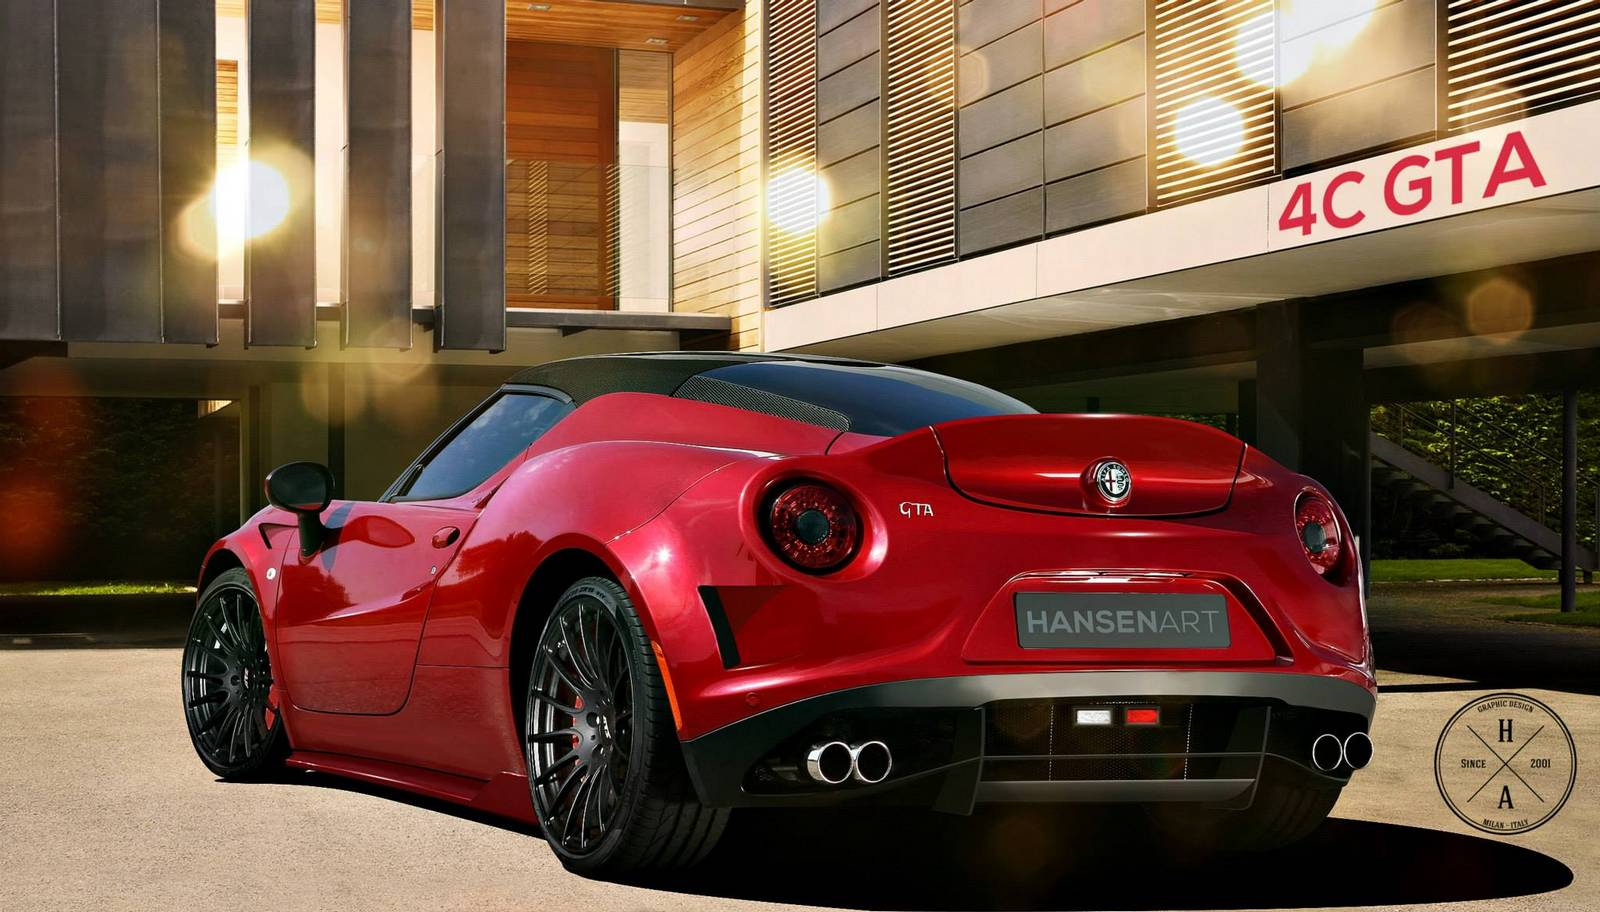 render alfa romeo 4c gta by hansen art gtspirit. Black Bedroom Furniture Sets. Home Design Ideas